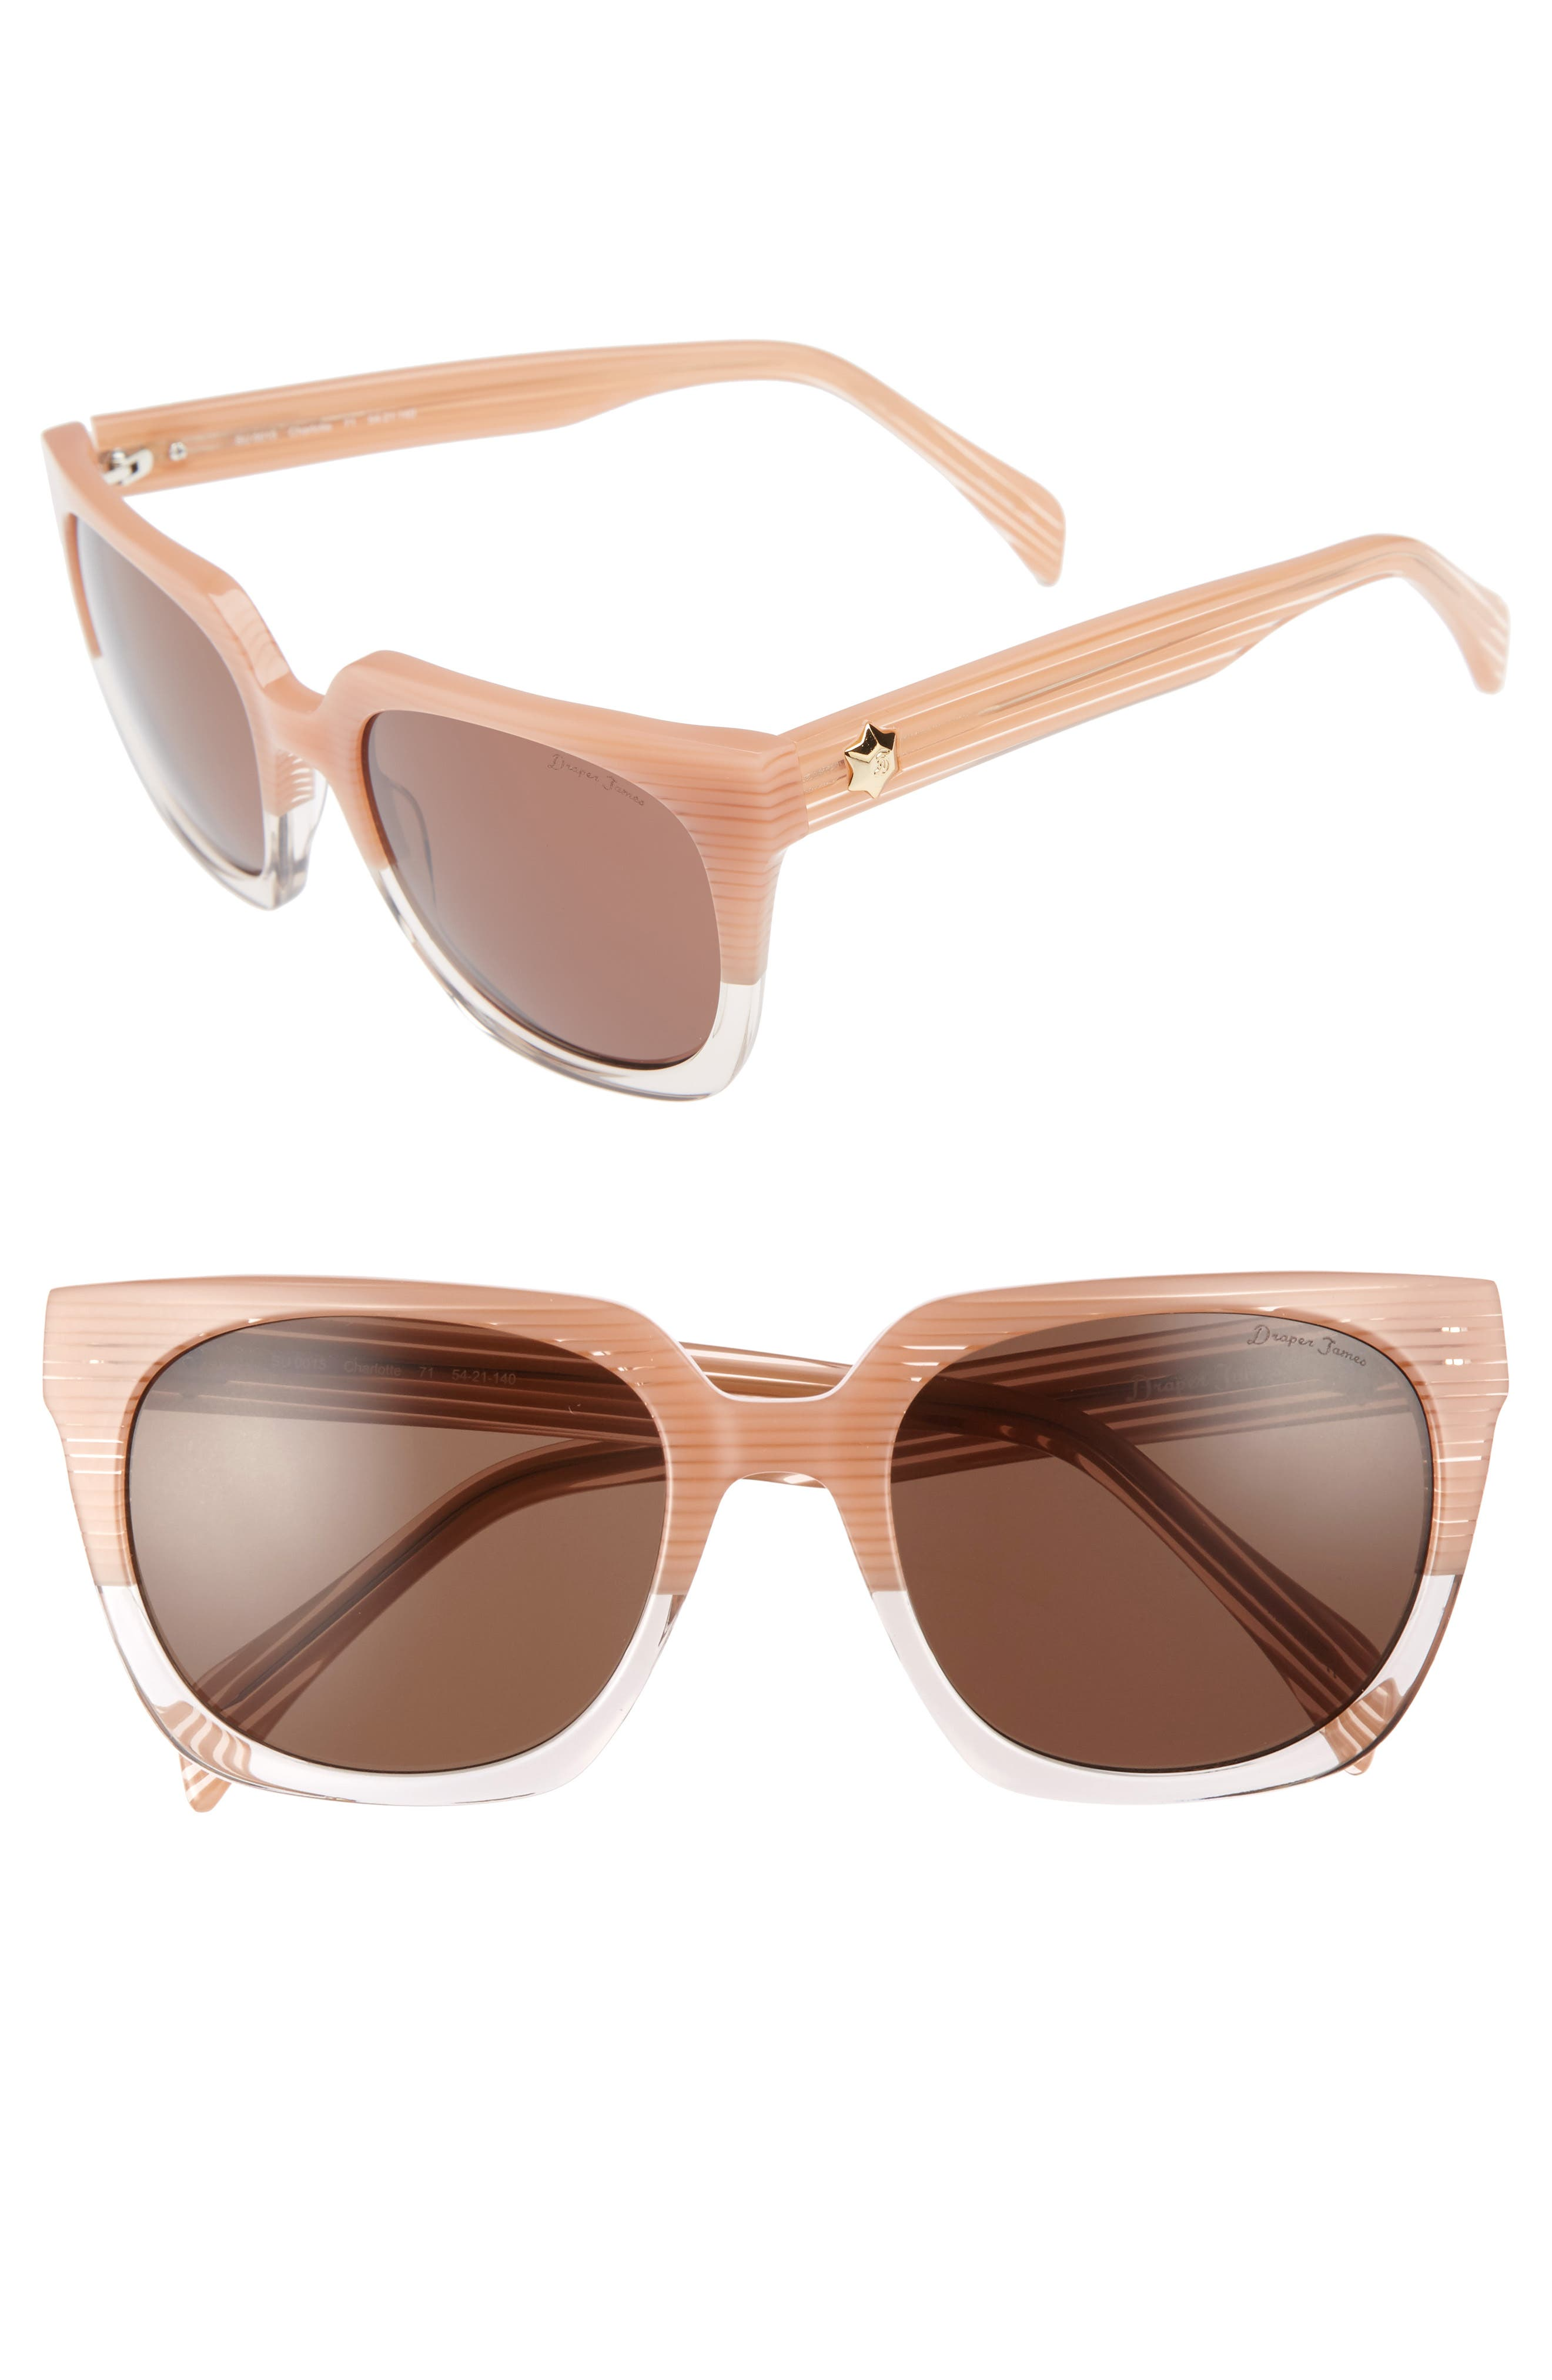 54mm Square Sunglasses,                         Main,                         color, Pink